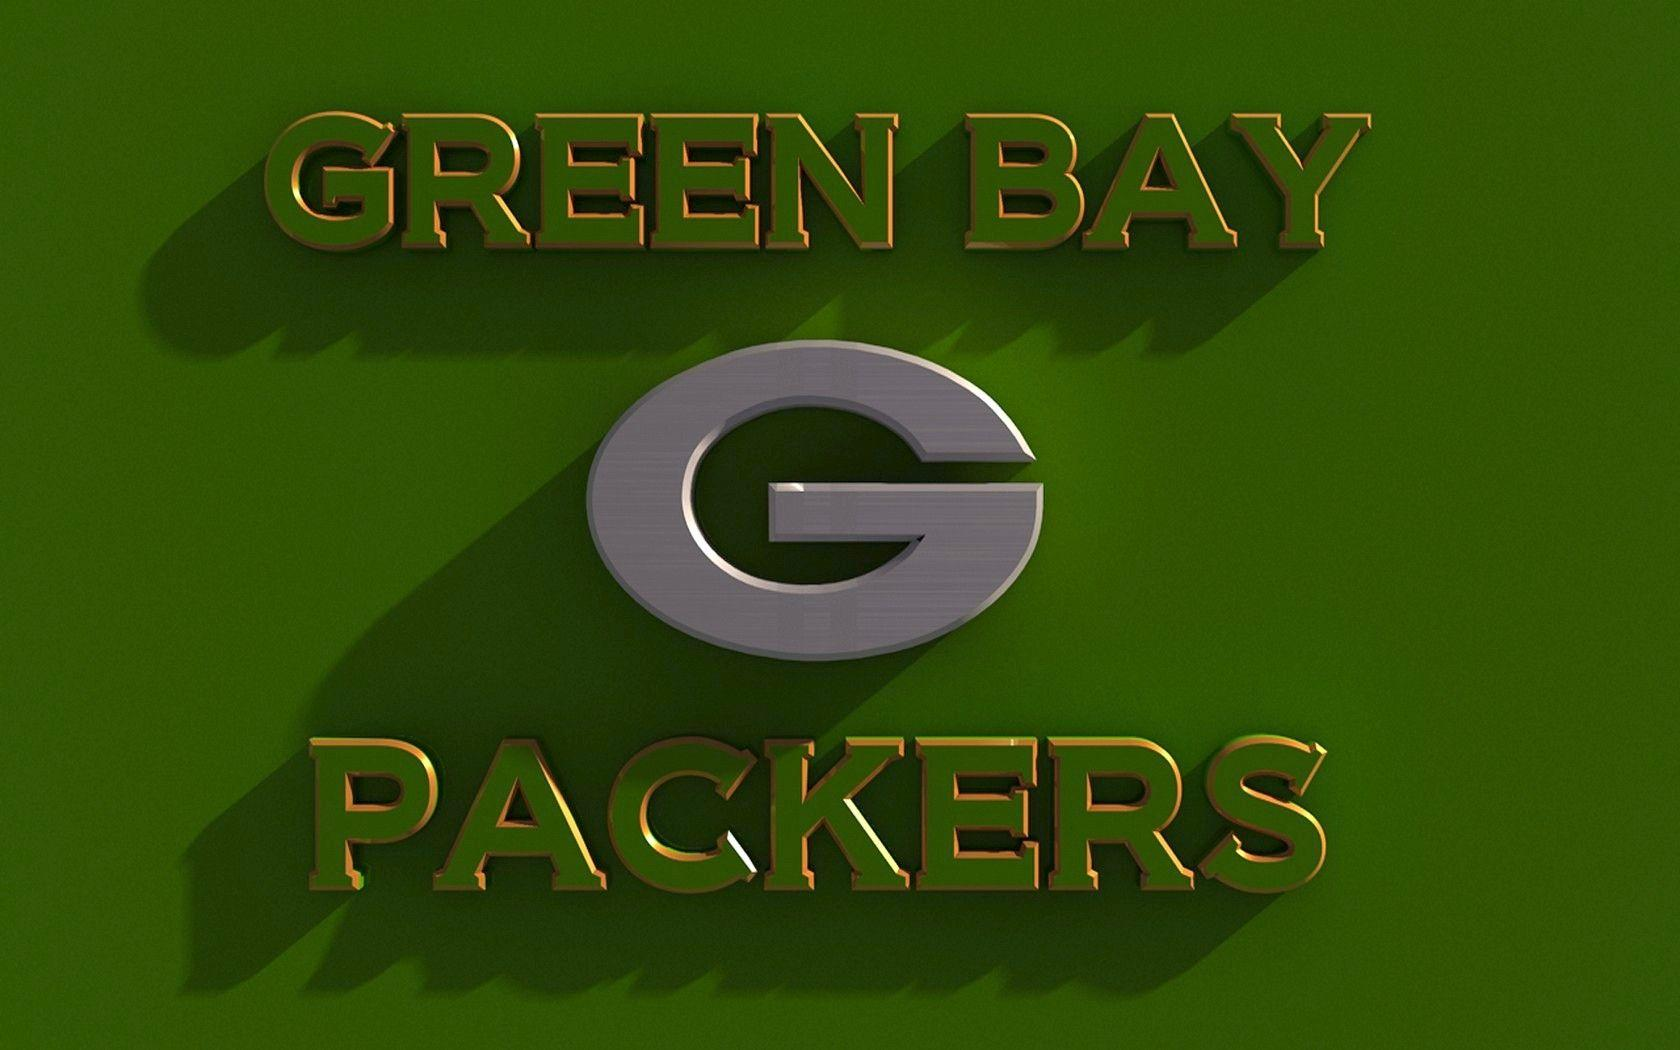 Green bay packers wallpapers wallpaper cave.